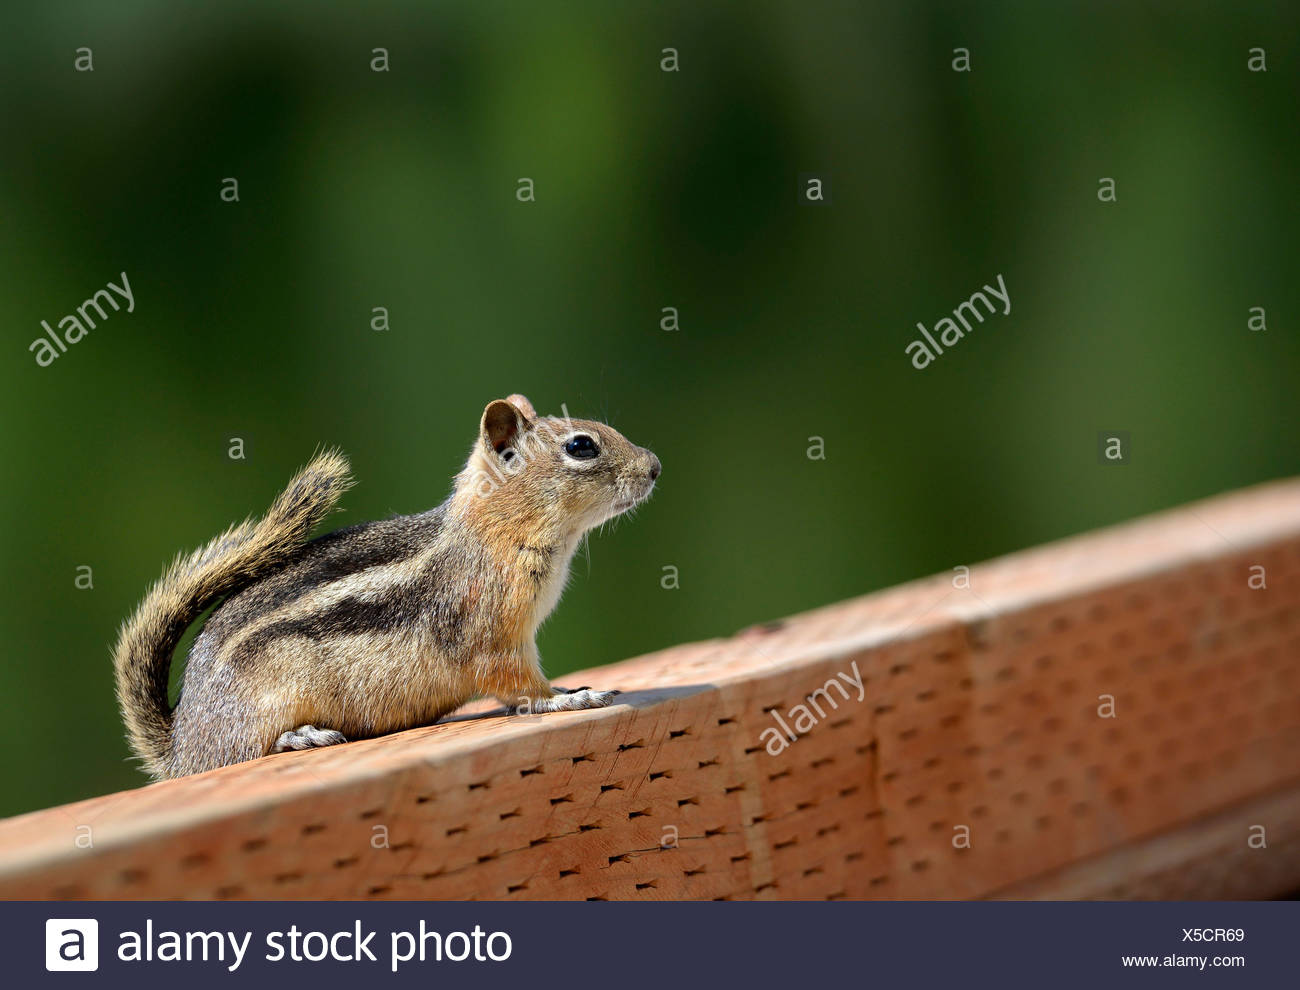 Cheeky squirrel, Golden-mantled Ground Squirrel (Spermophilus lateralis), Posey Lake, Dixie National Forest, Utah, Southwest - Stock Image